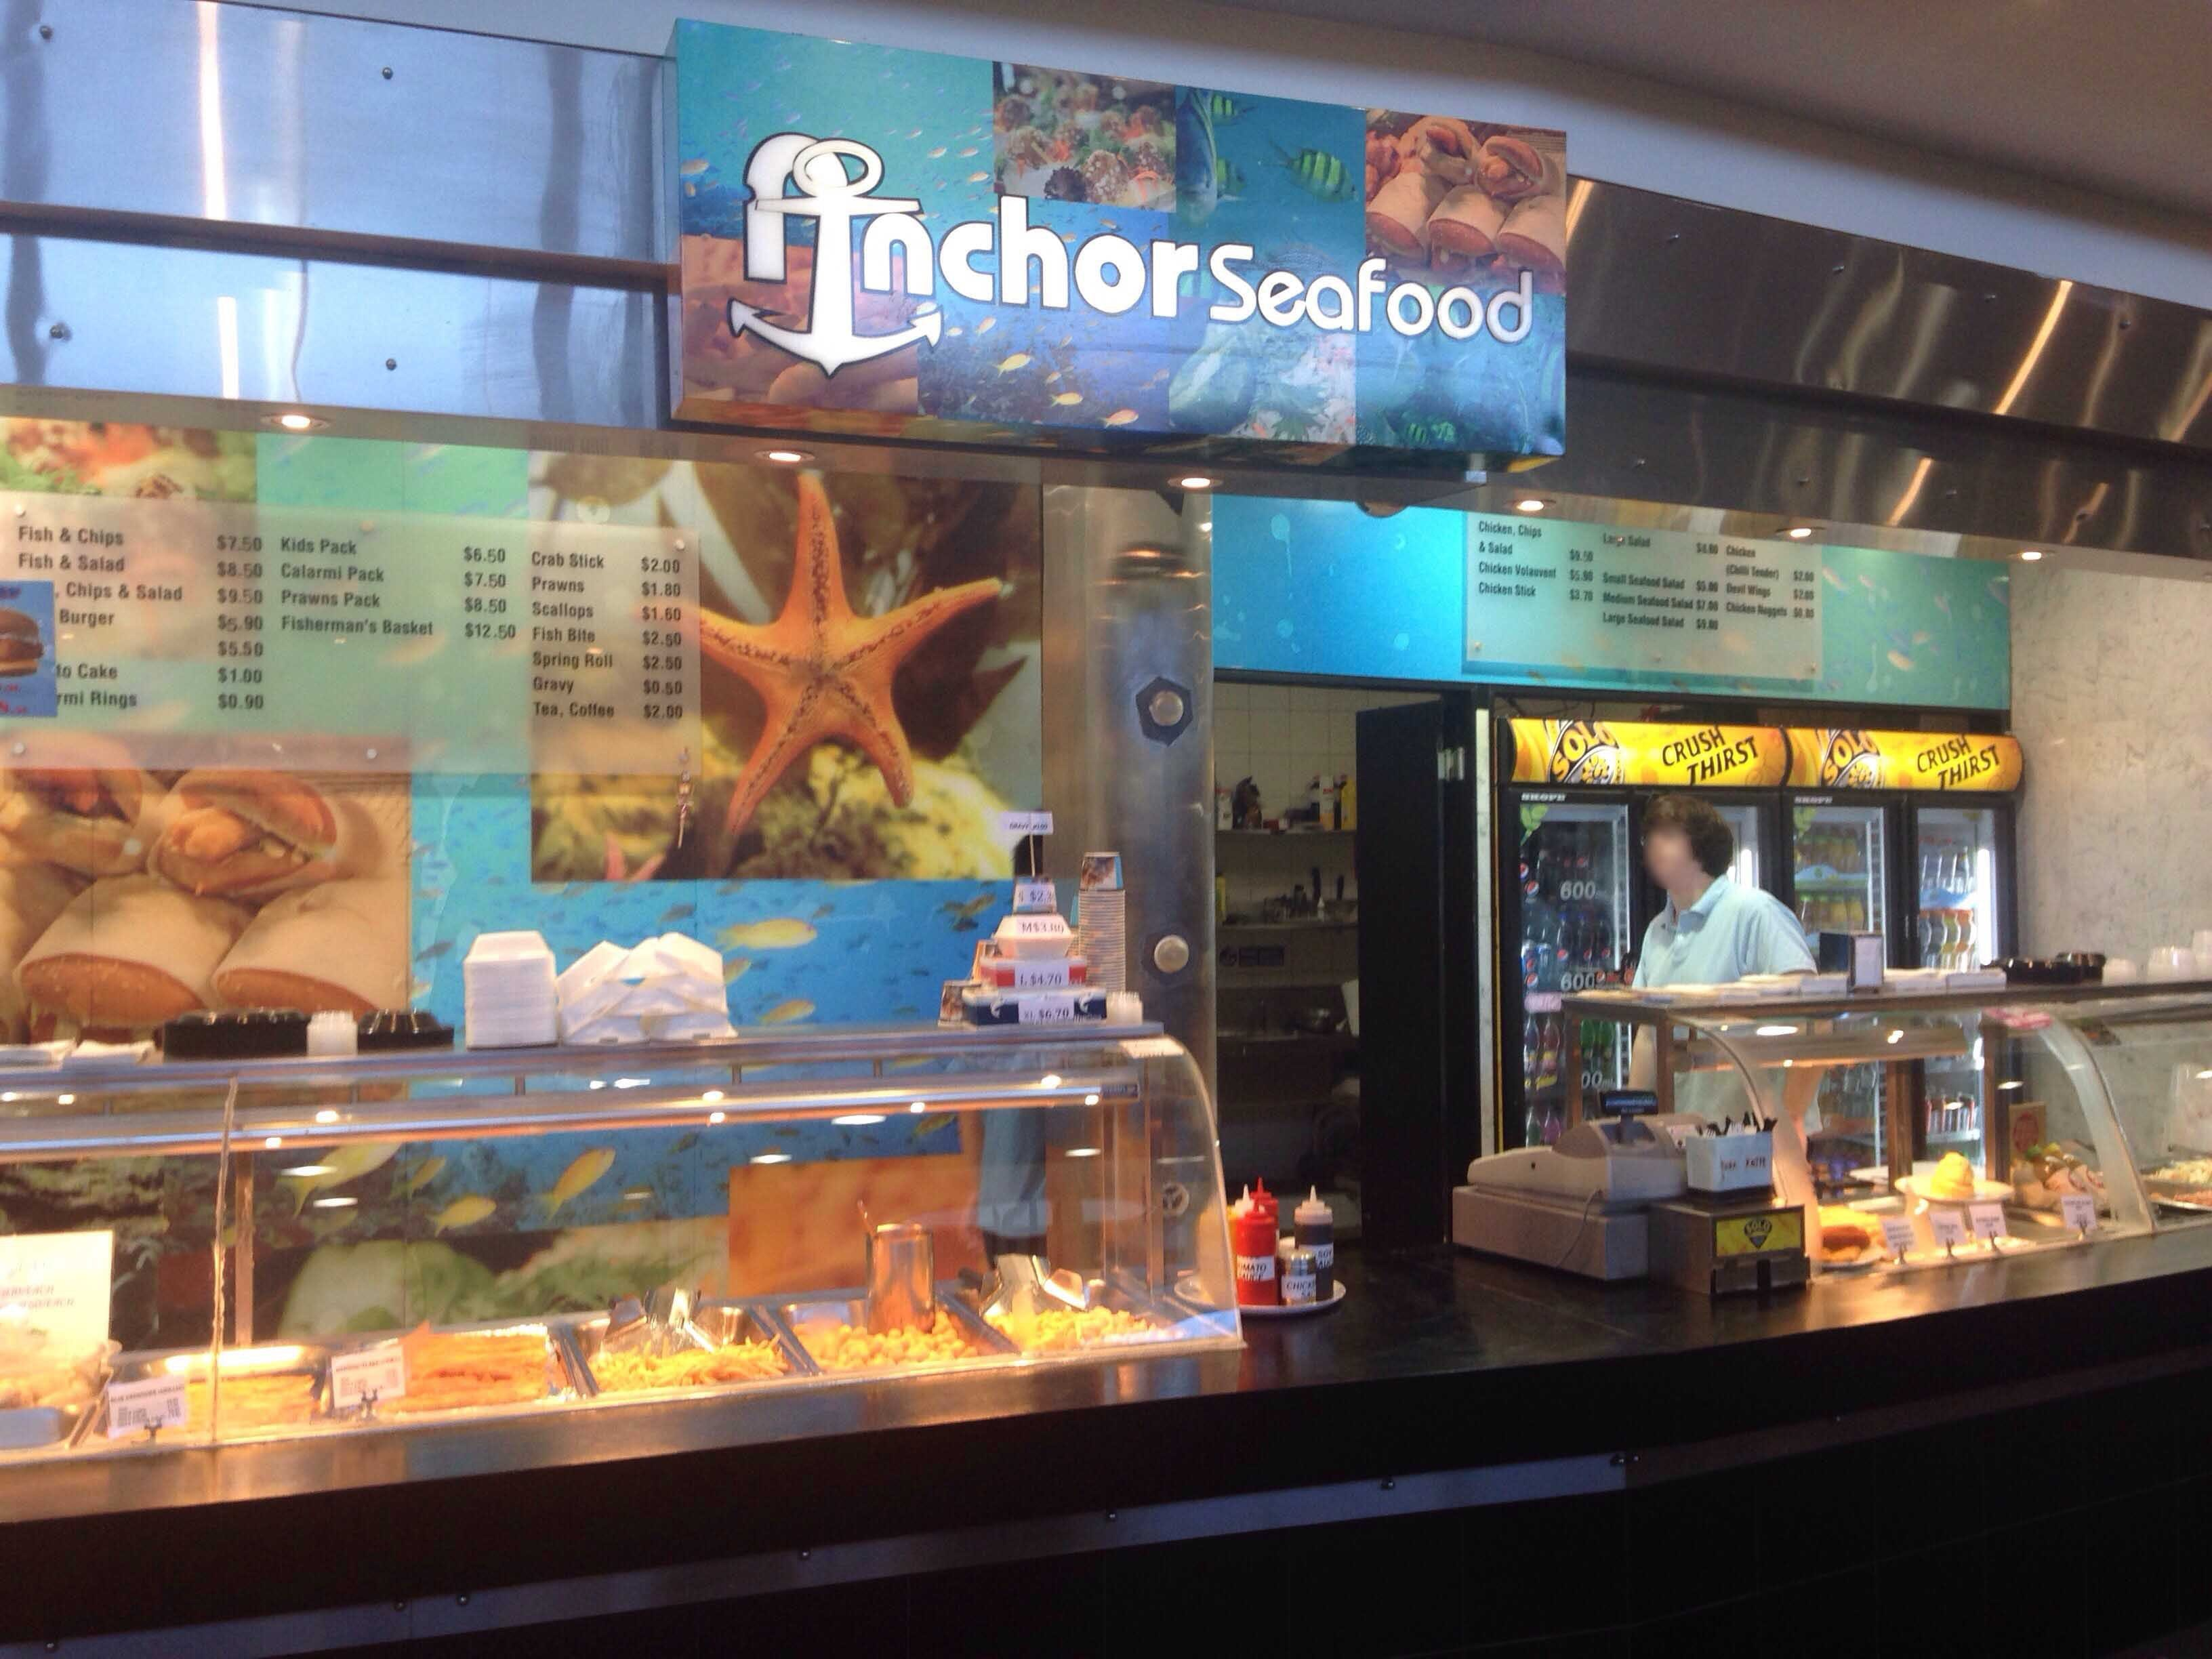 Anchors Seafood - Sydney Tourism